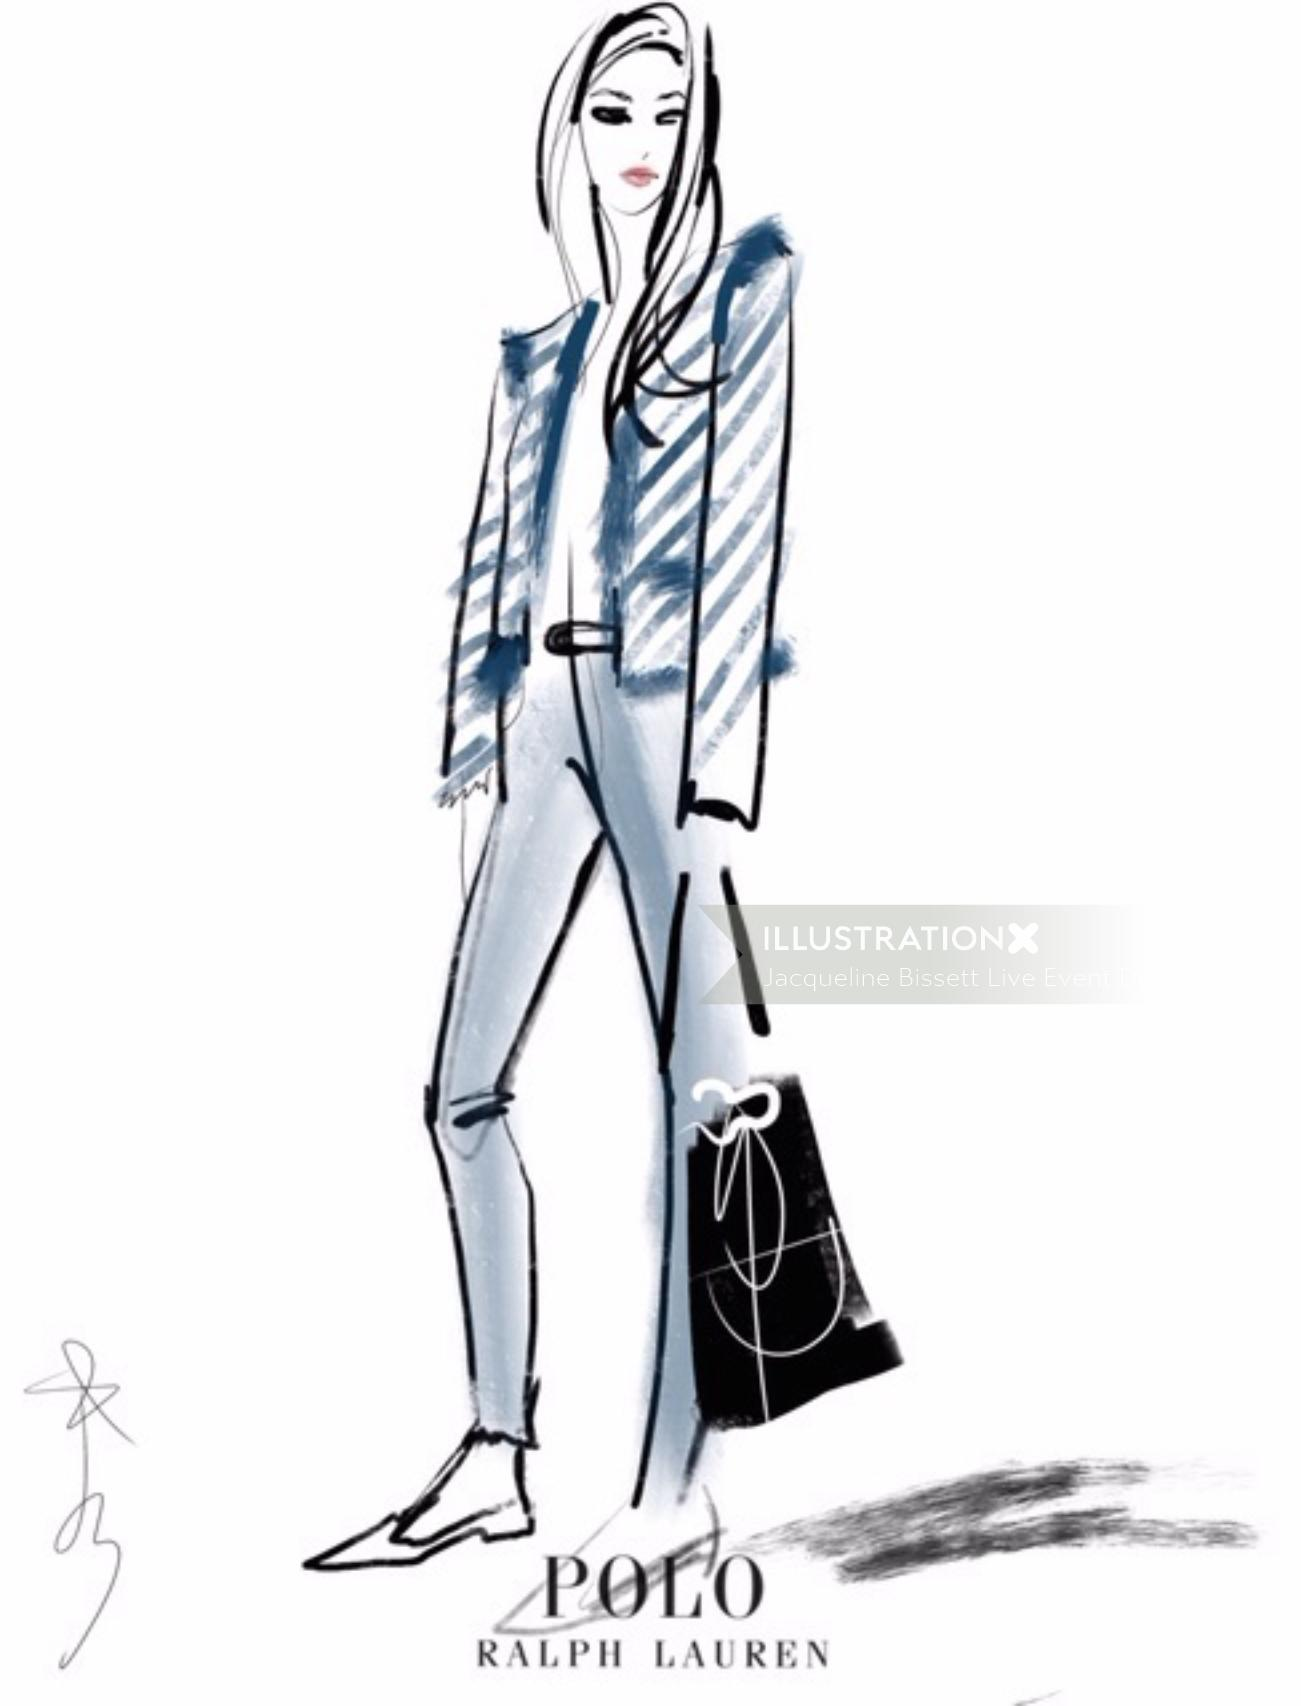 Polo Ralph lauren Live event drawing